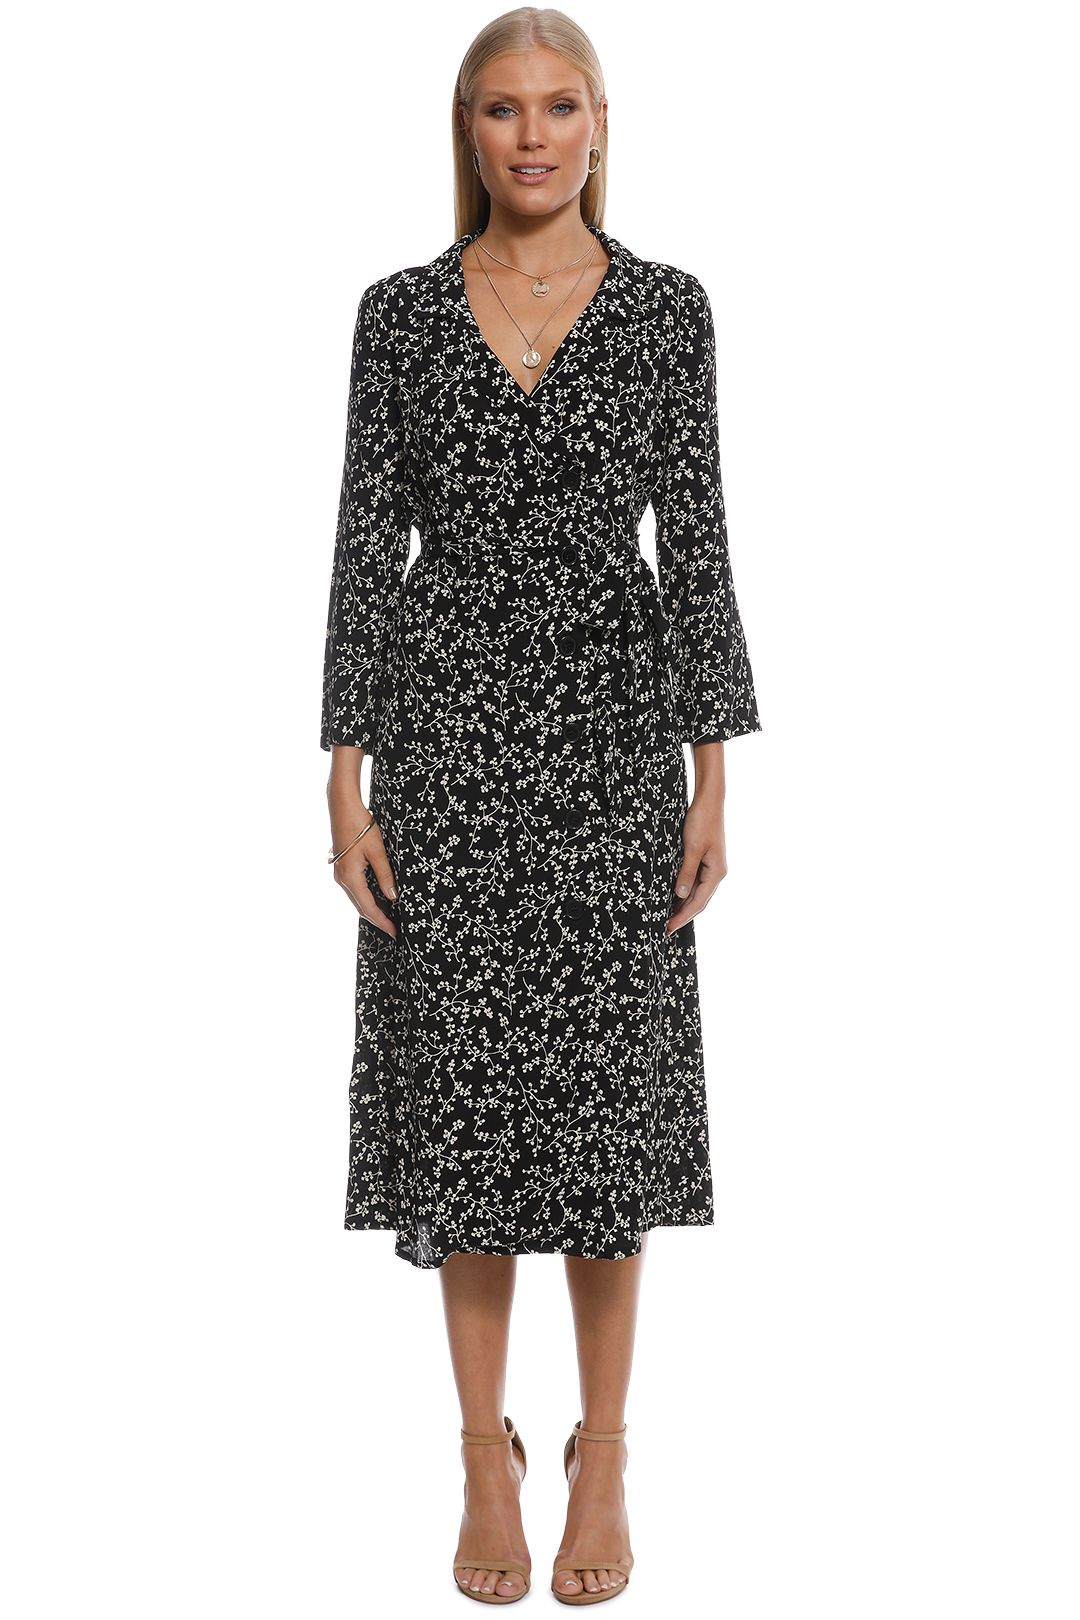 MNG - Rina Floral Print Dress - Black and White - Front